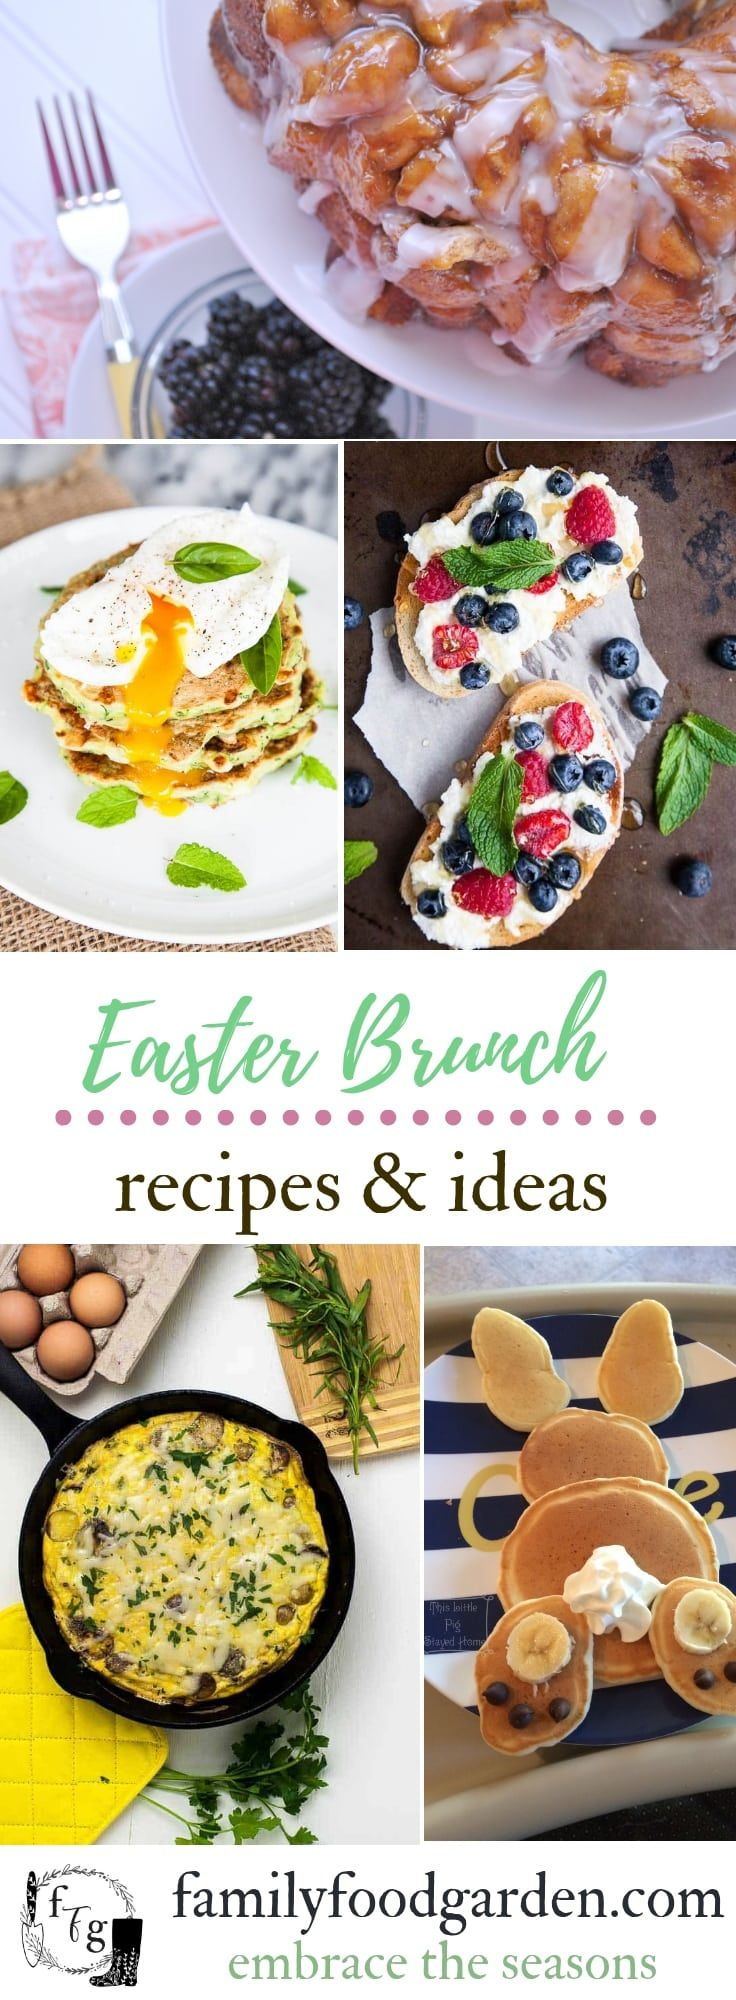 Spring and Easter Brunch Ideas images